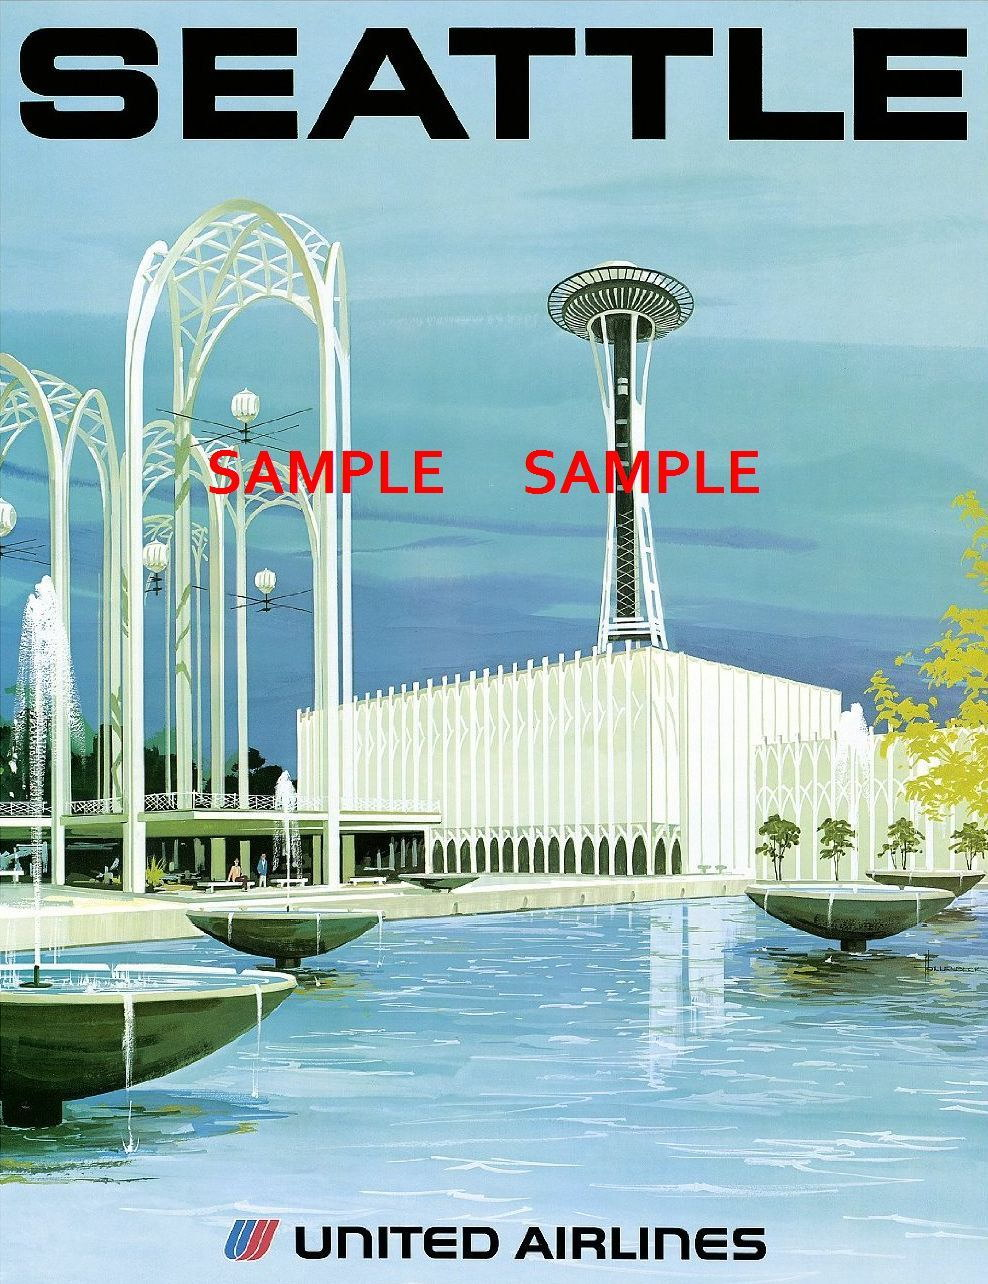 100410 United Air Line Travel SEATTLE Decor WALL PRINT POSTER AU